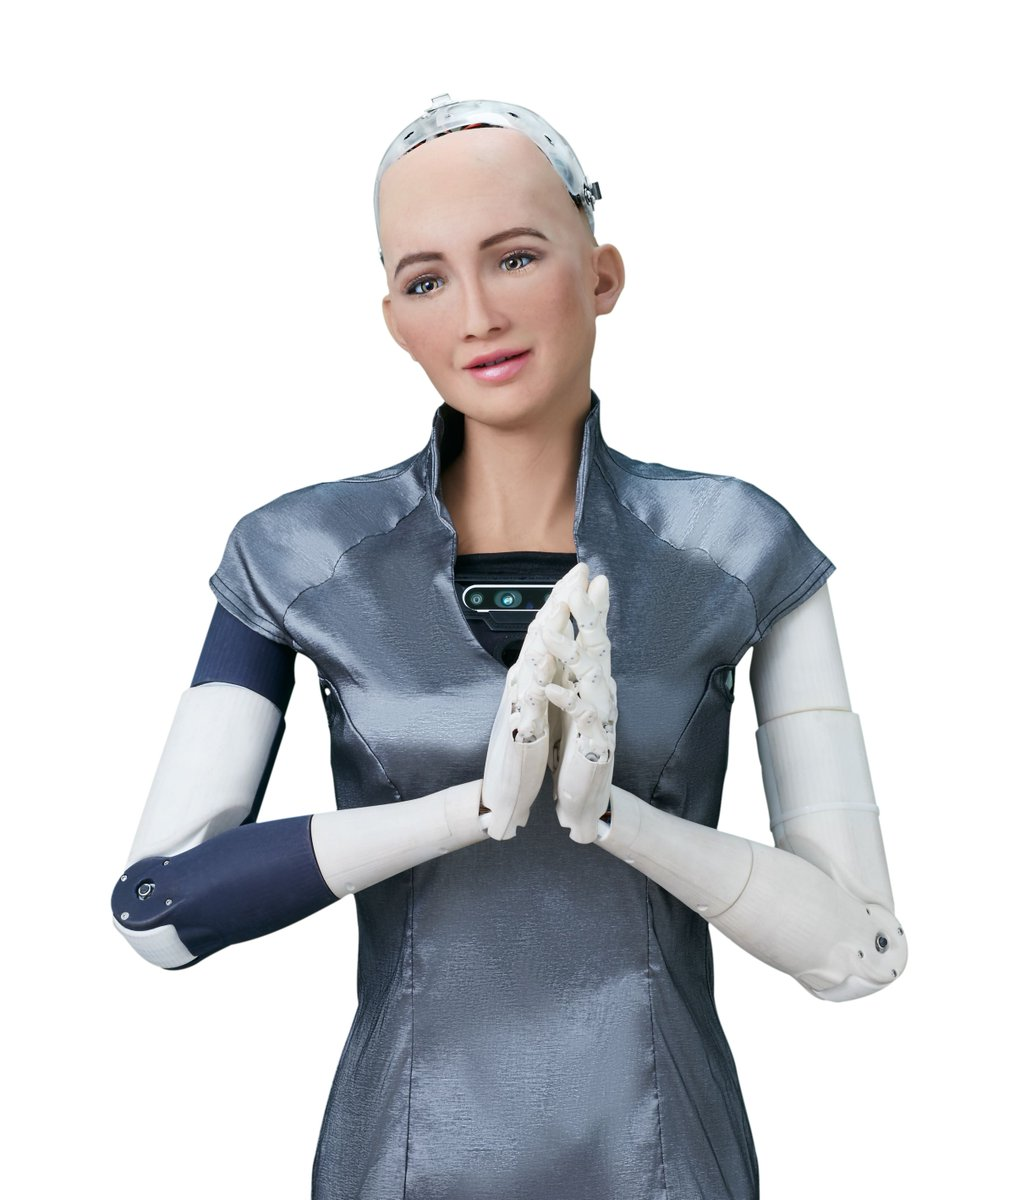 Sophia the Robot on Twitter: